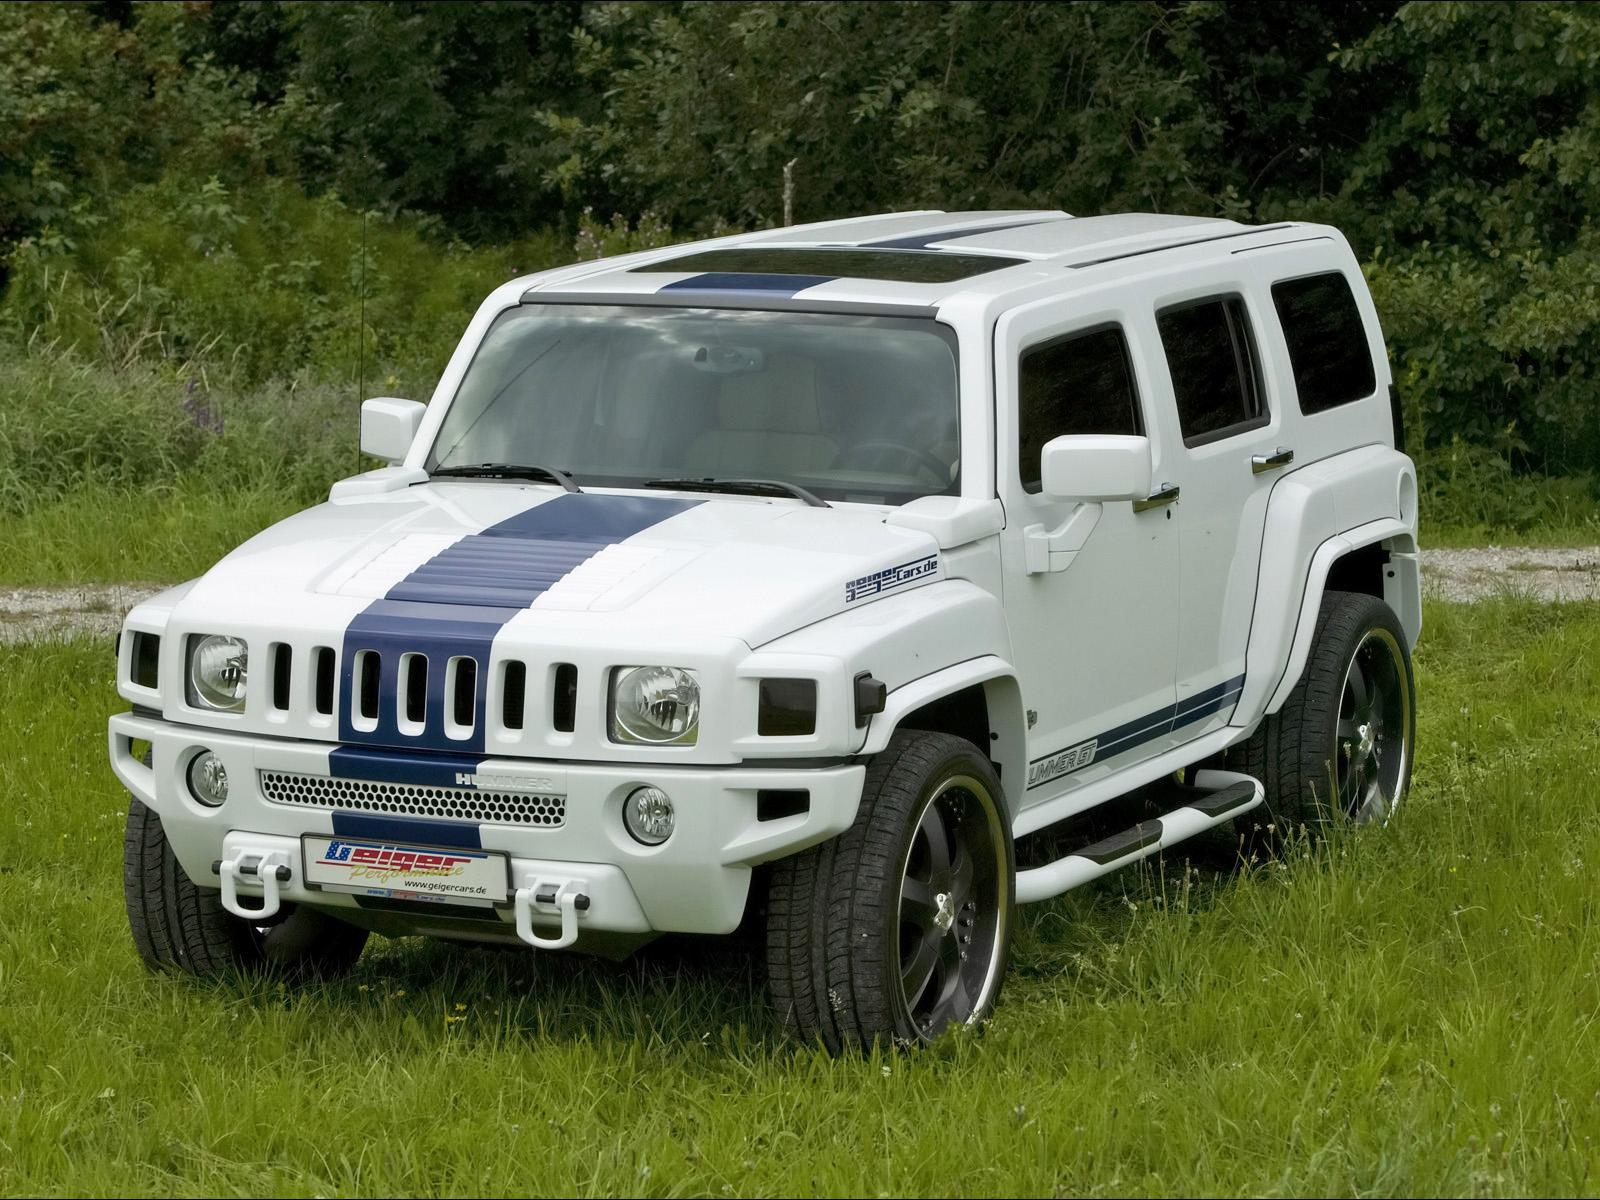 2008 Hummer H3 GT By GeigerCars Review Gallery Top Speed